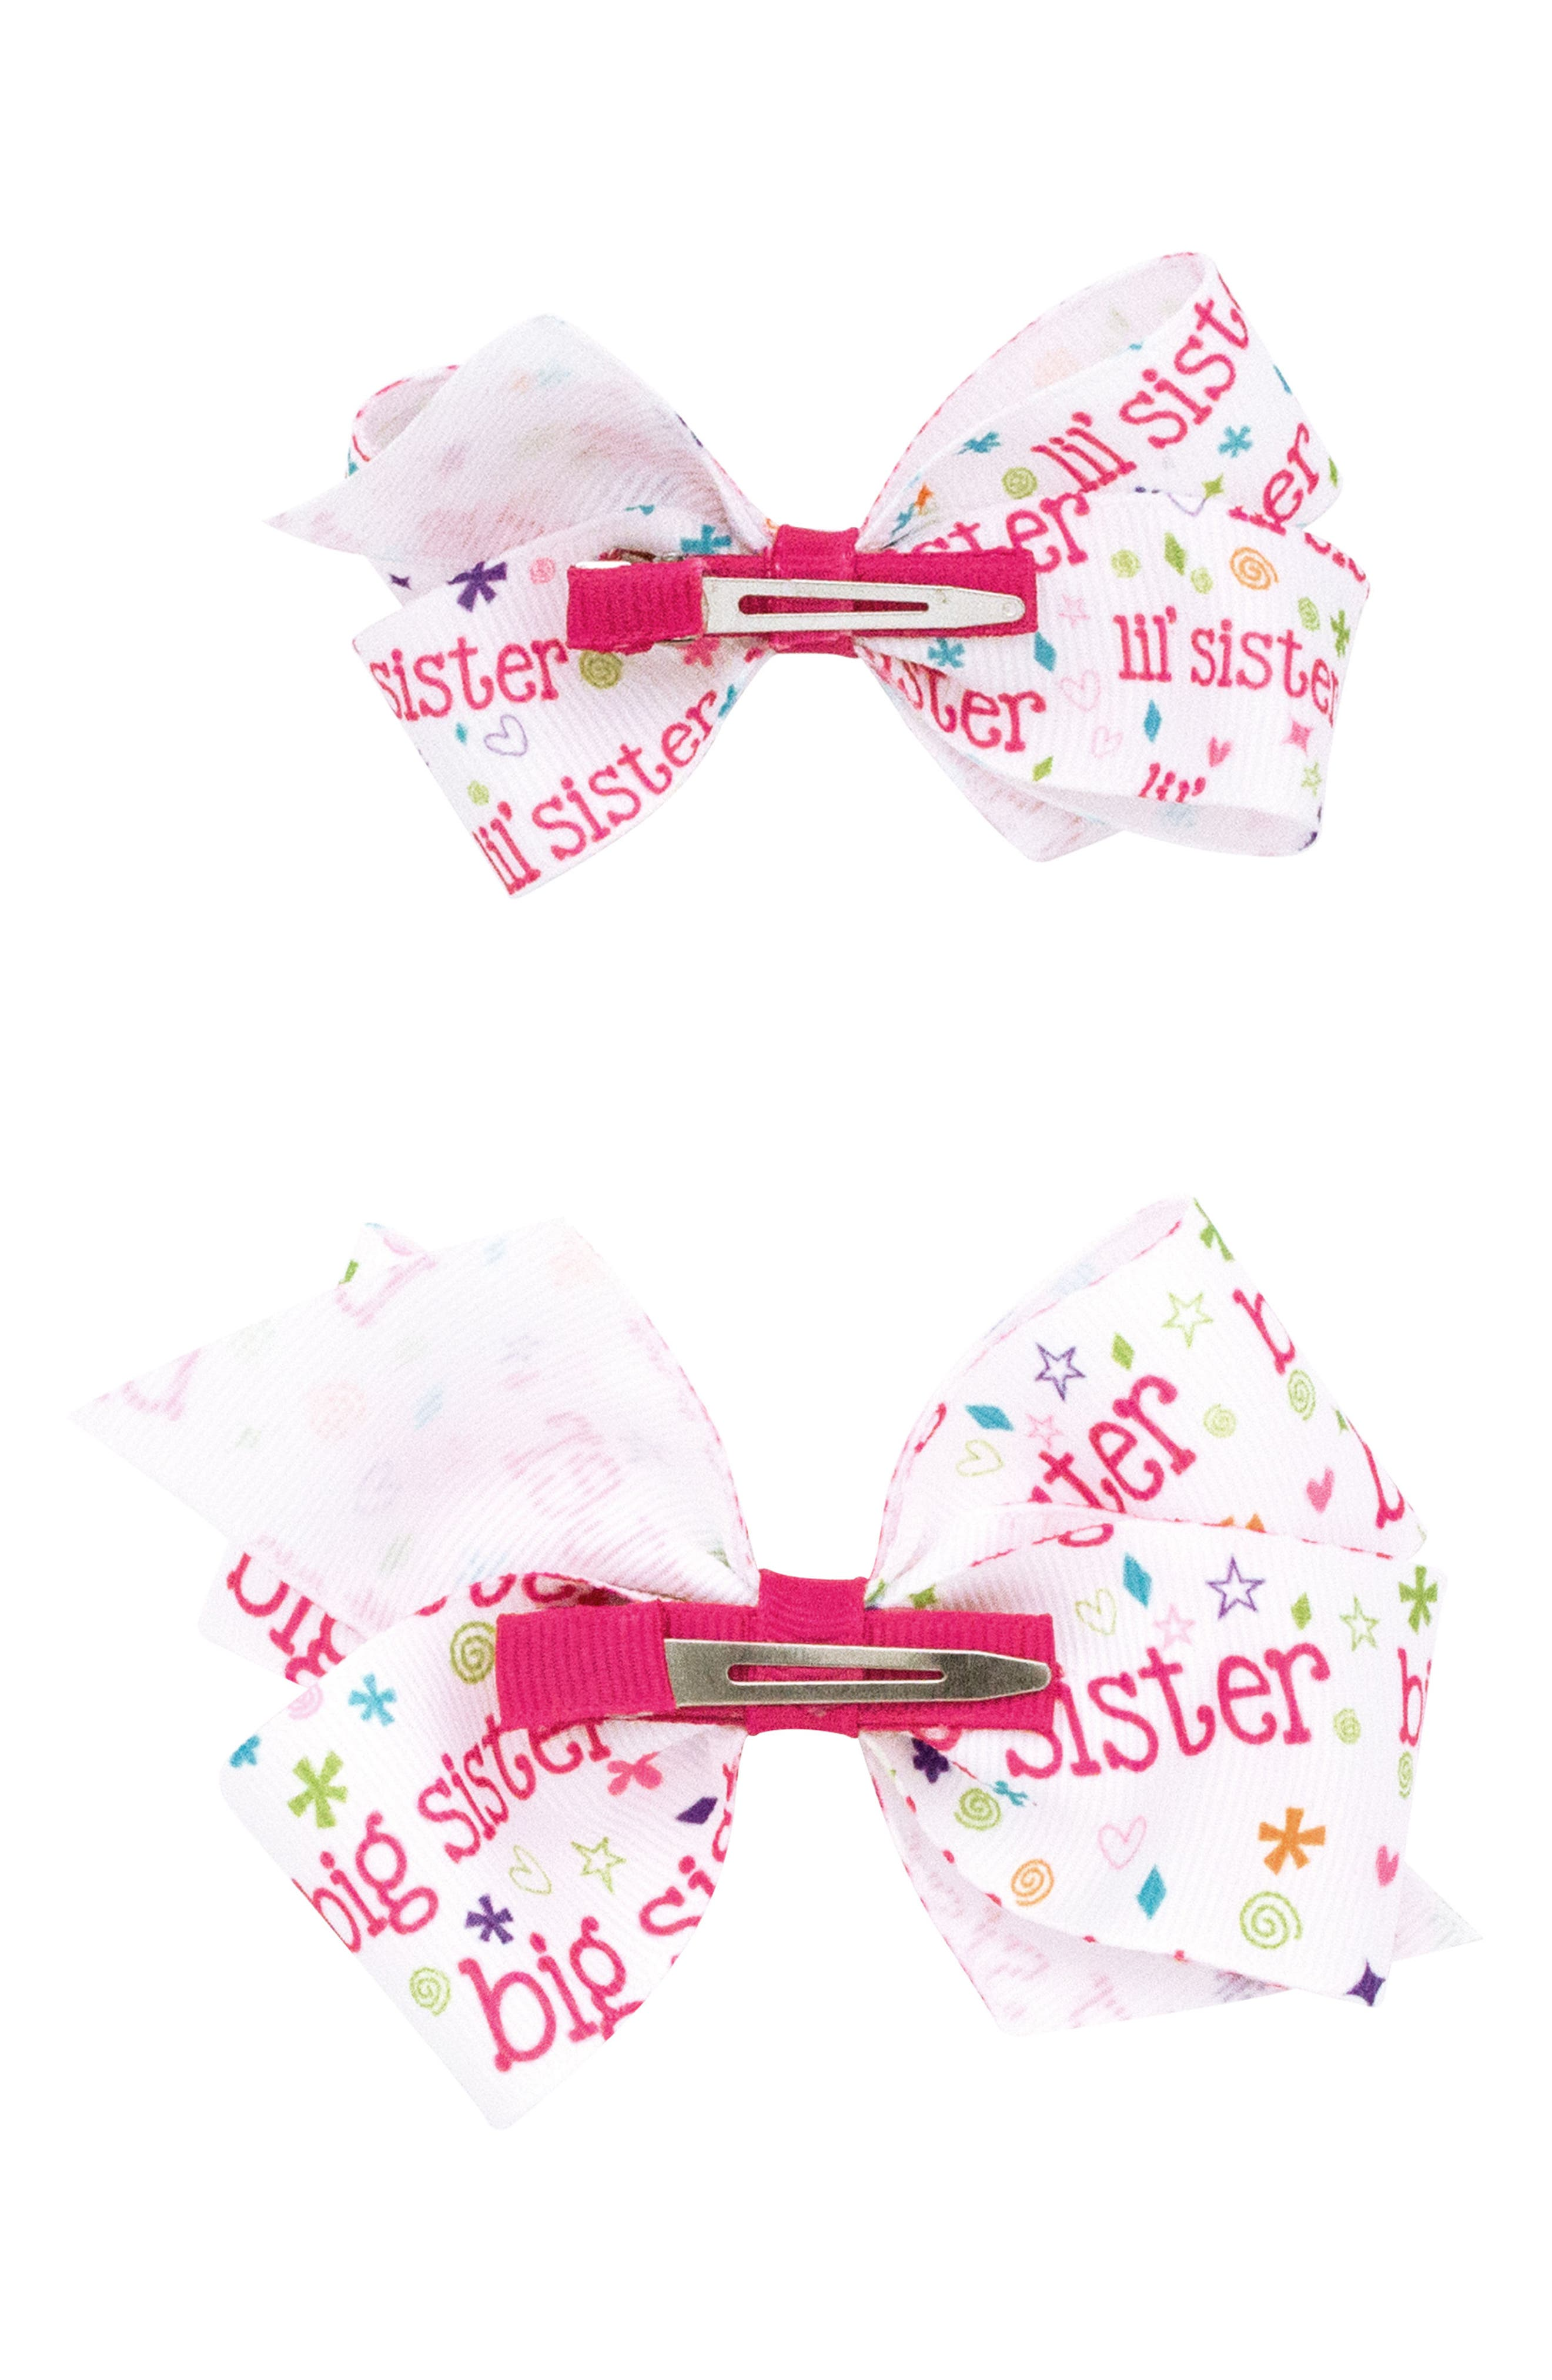 Big and Lil Sister 2-Pack Hair Clips,                             Alternate thumbnail 2, color,                             680